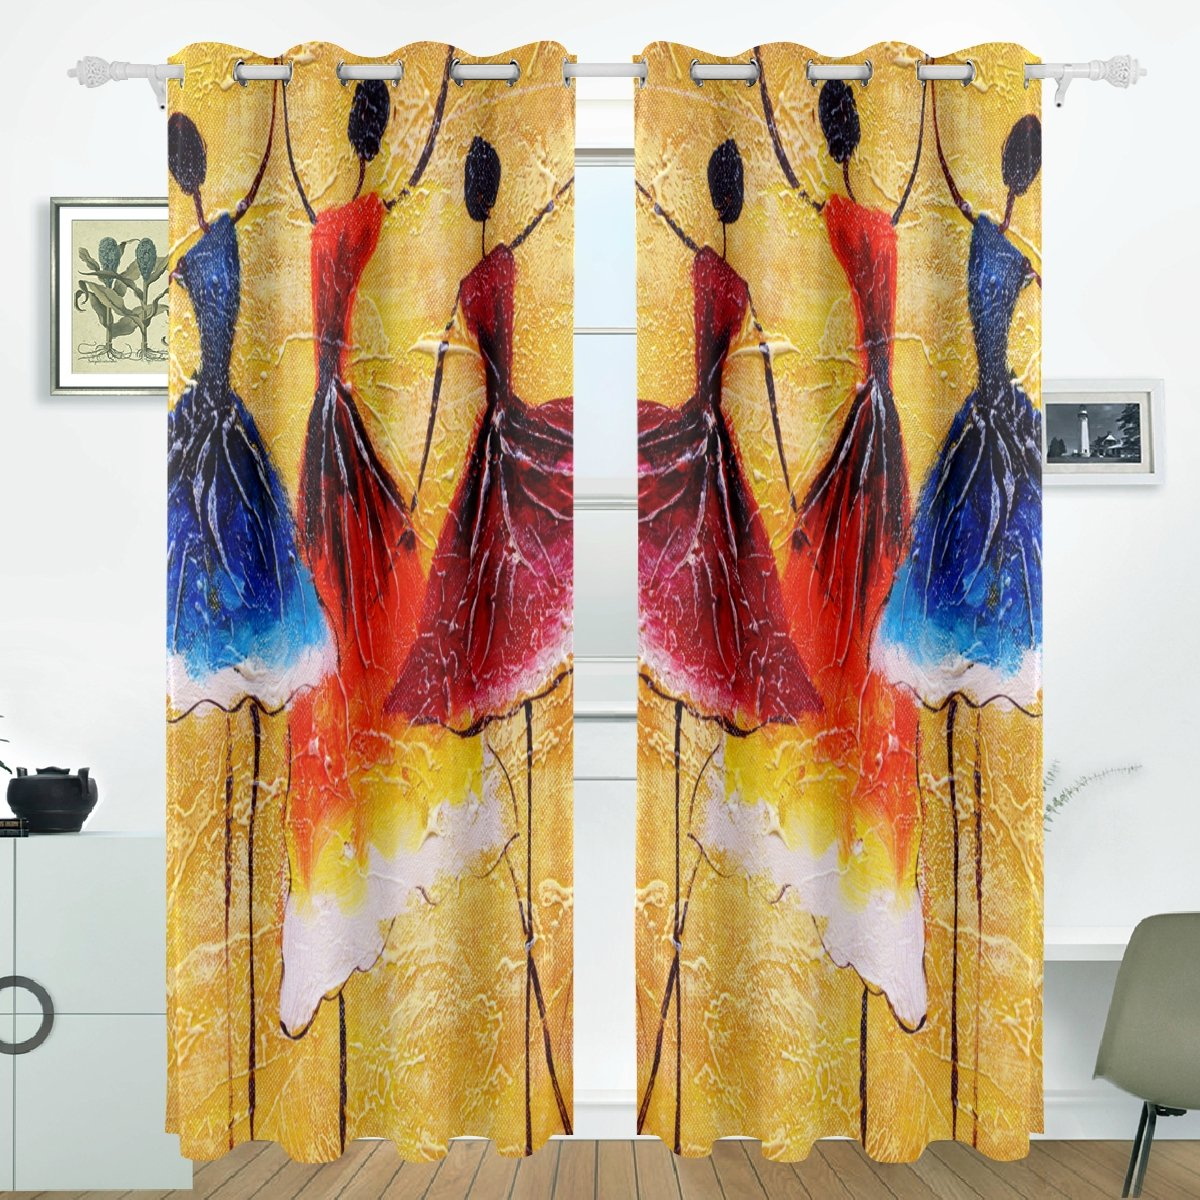 JSTEL Spanish Dance Flower Curtains Drapes Panels Darkening Blackout Grommet Room Divider for Patio Window Sliding Glass Door 55x84 Inches,Set of 2